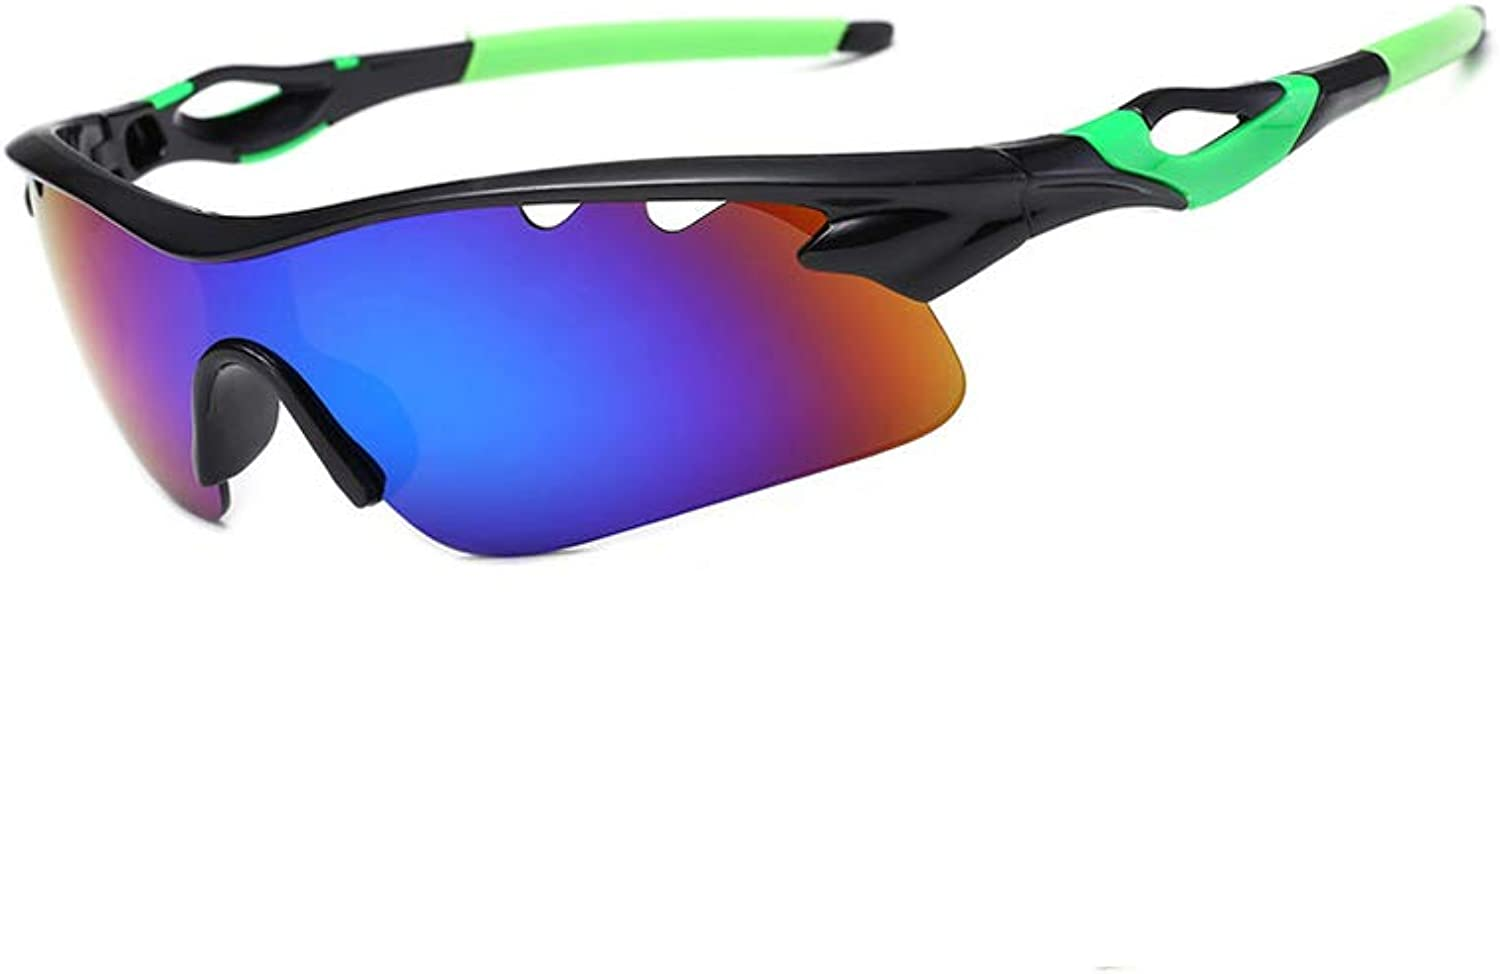 Hosgor Polarized Sports Sunglasses Sun Glasses with 5 Interchangeable Lenses for Men Women Baseball Cycling Riding Runing